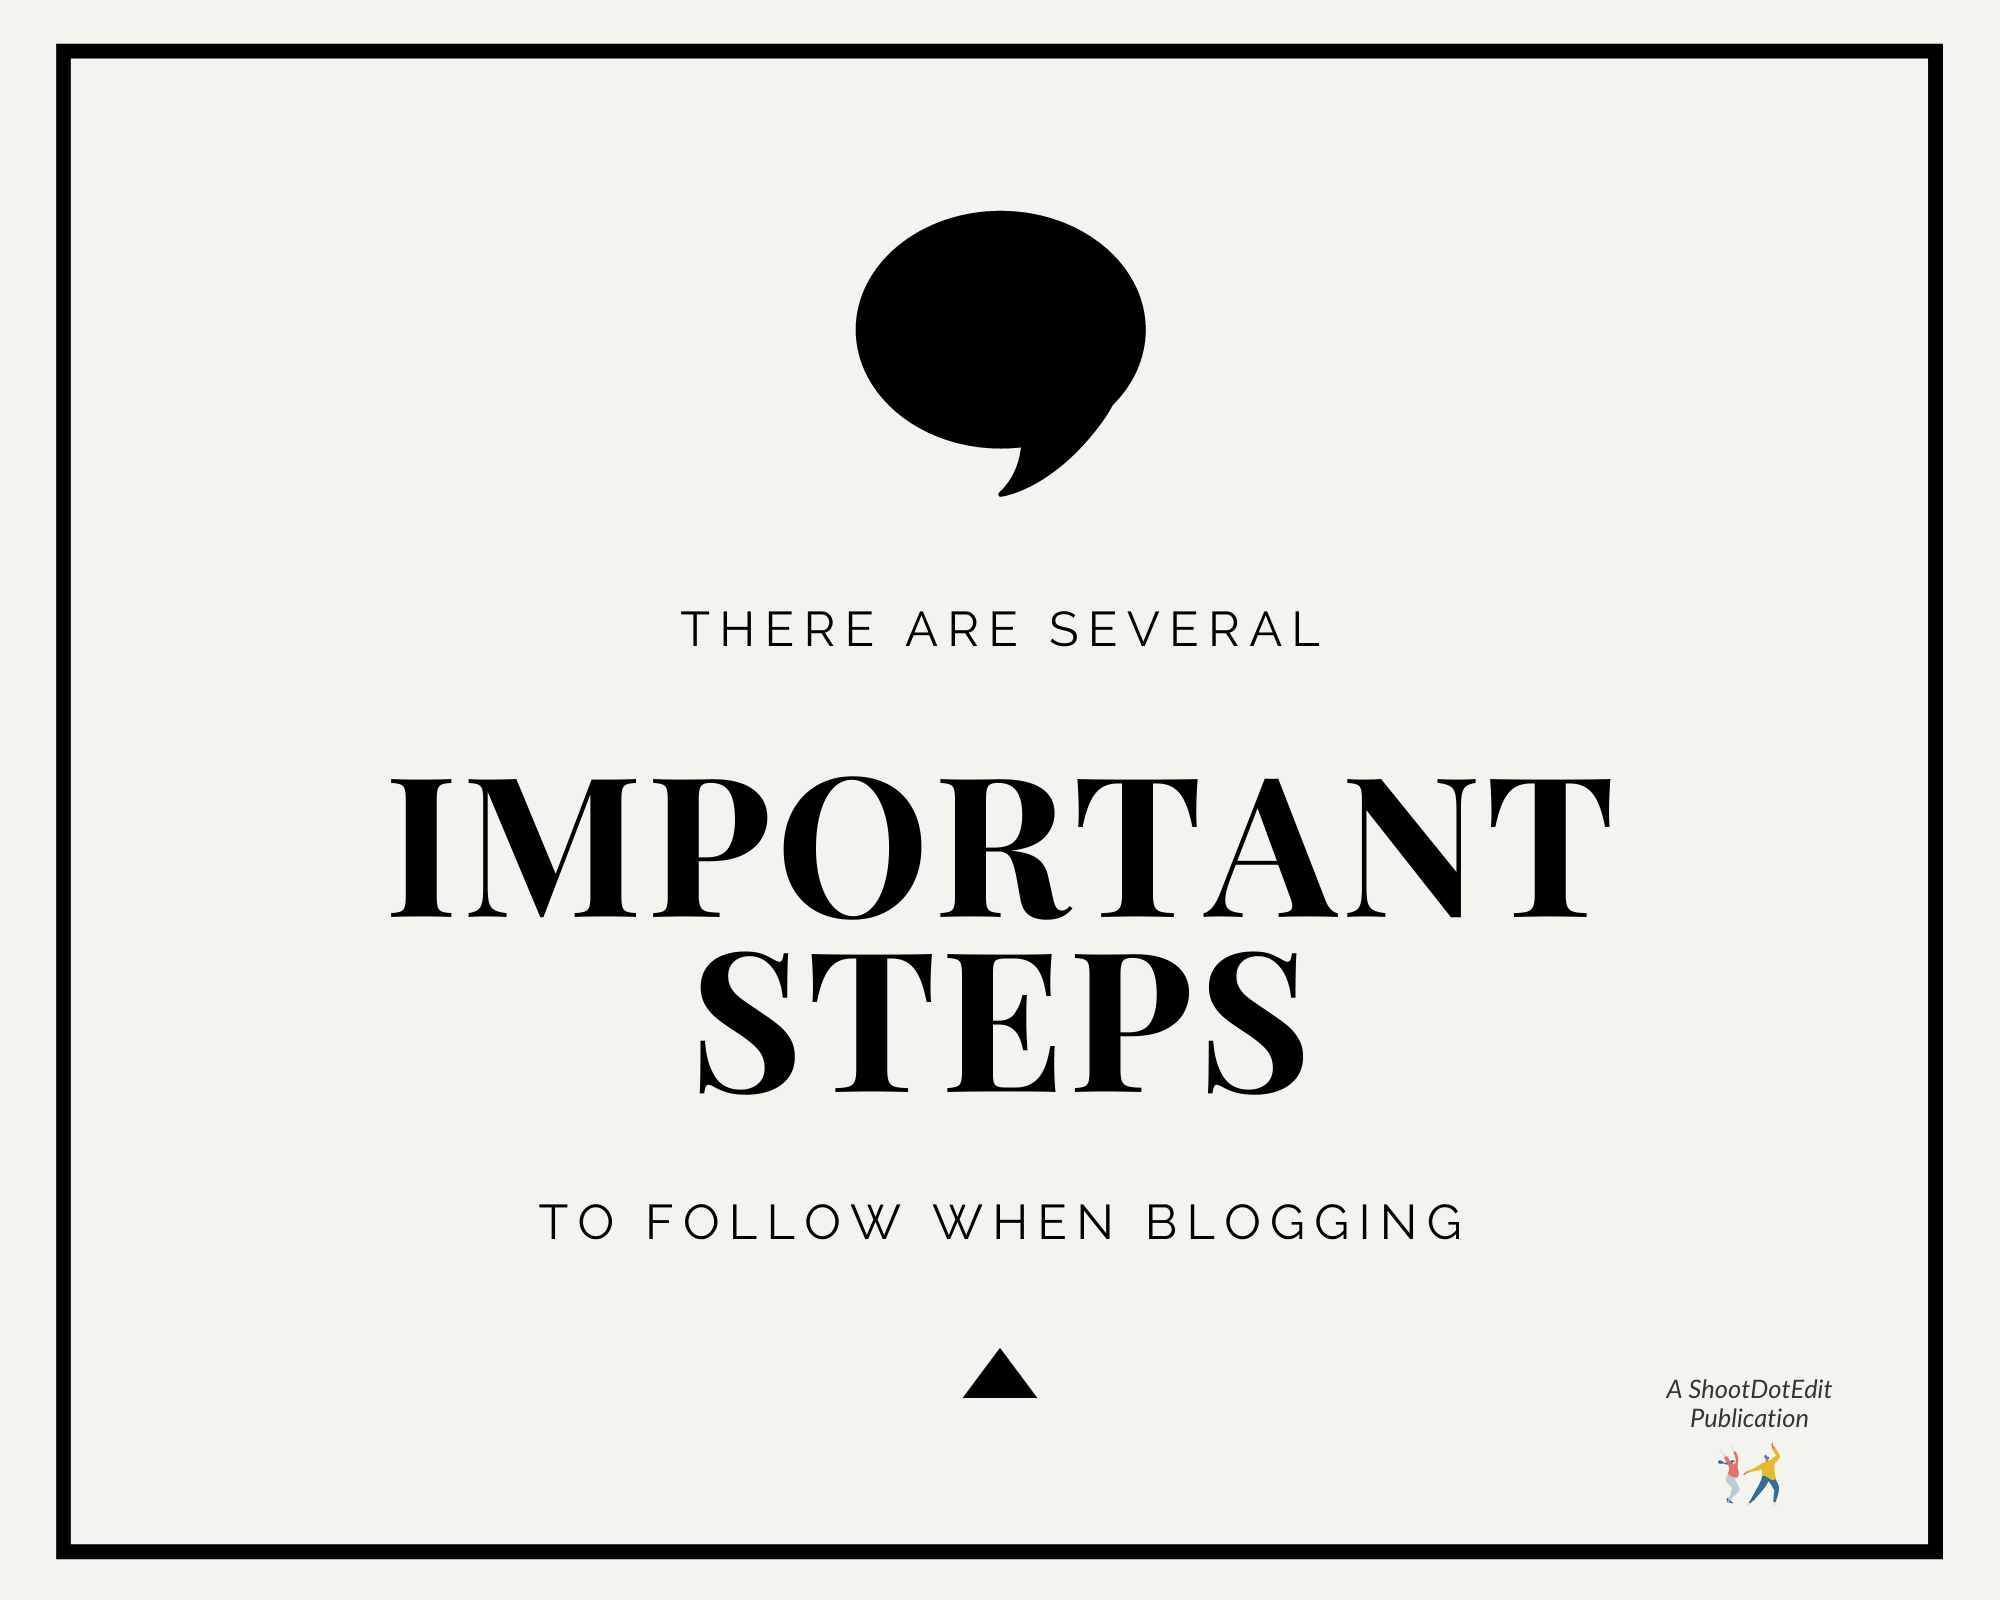 Infographic stating there are several important steps to follow when blogging